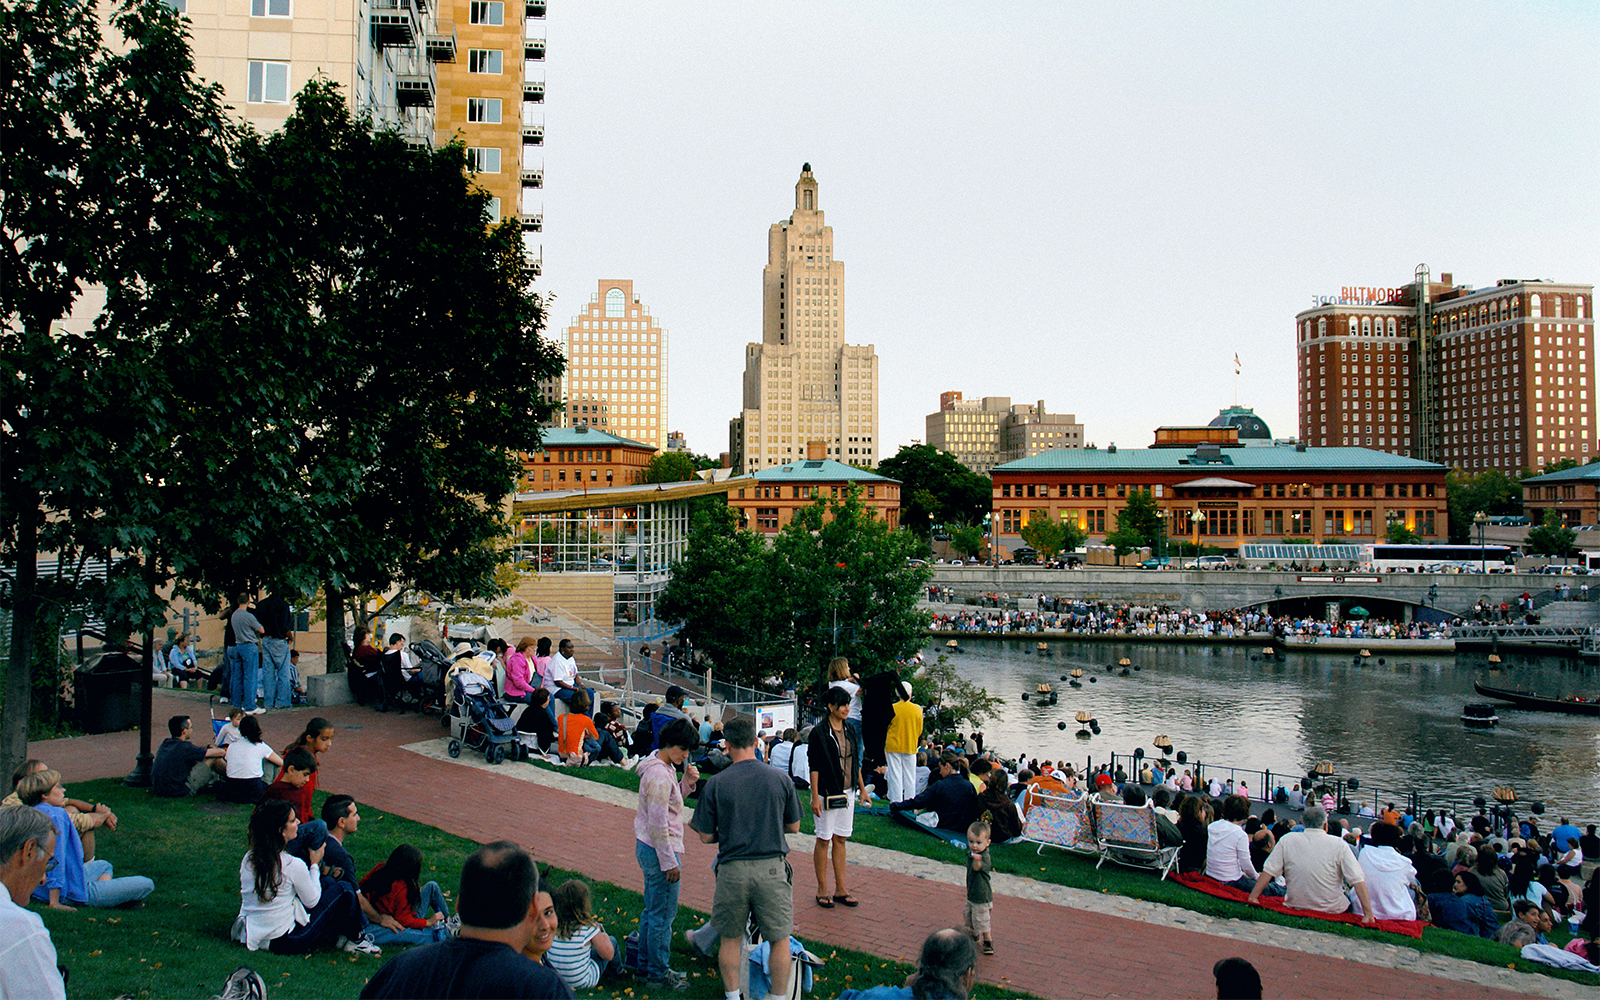 America's Best Cities for Picnics: No. 5 Providence